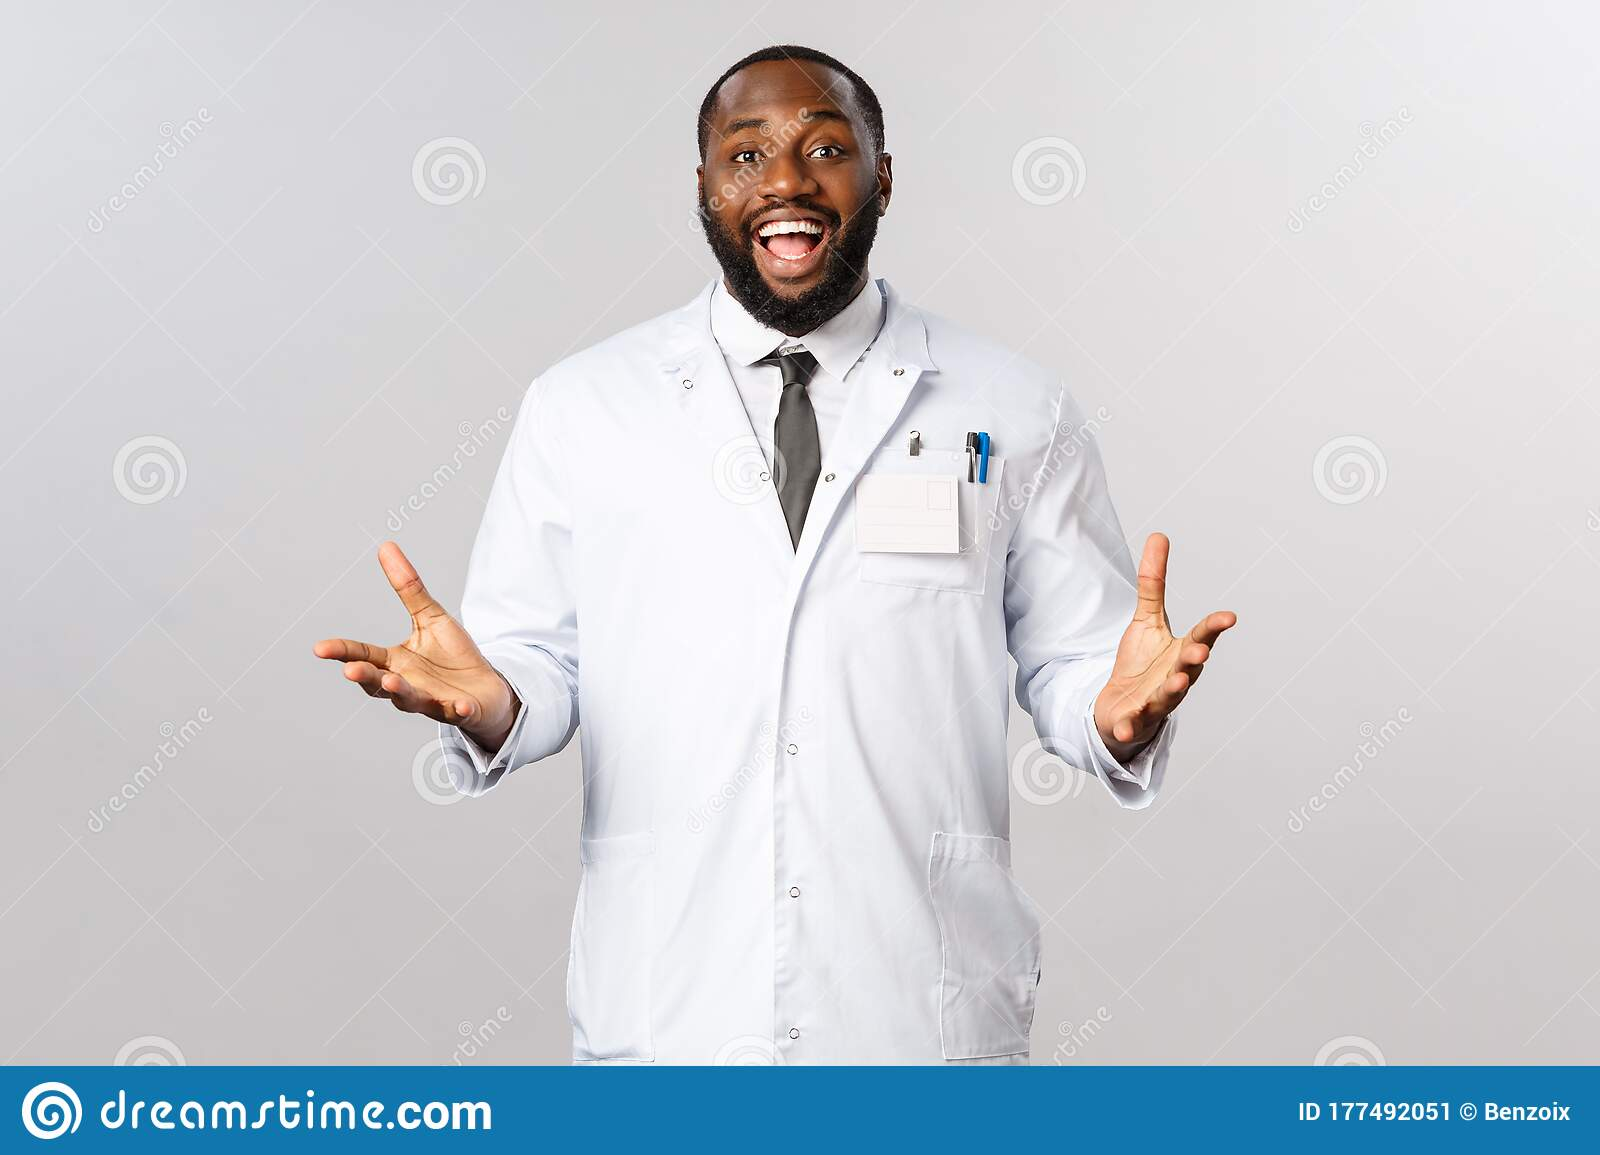 Happy African American Doctor At Clinic Or Hospital Welcoming Patient Telling Good News To Family After Treating Person Stock Image Image Of Outbreak Hospital 177492051